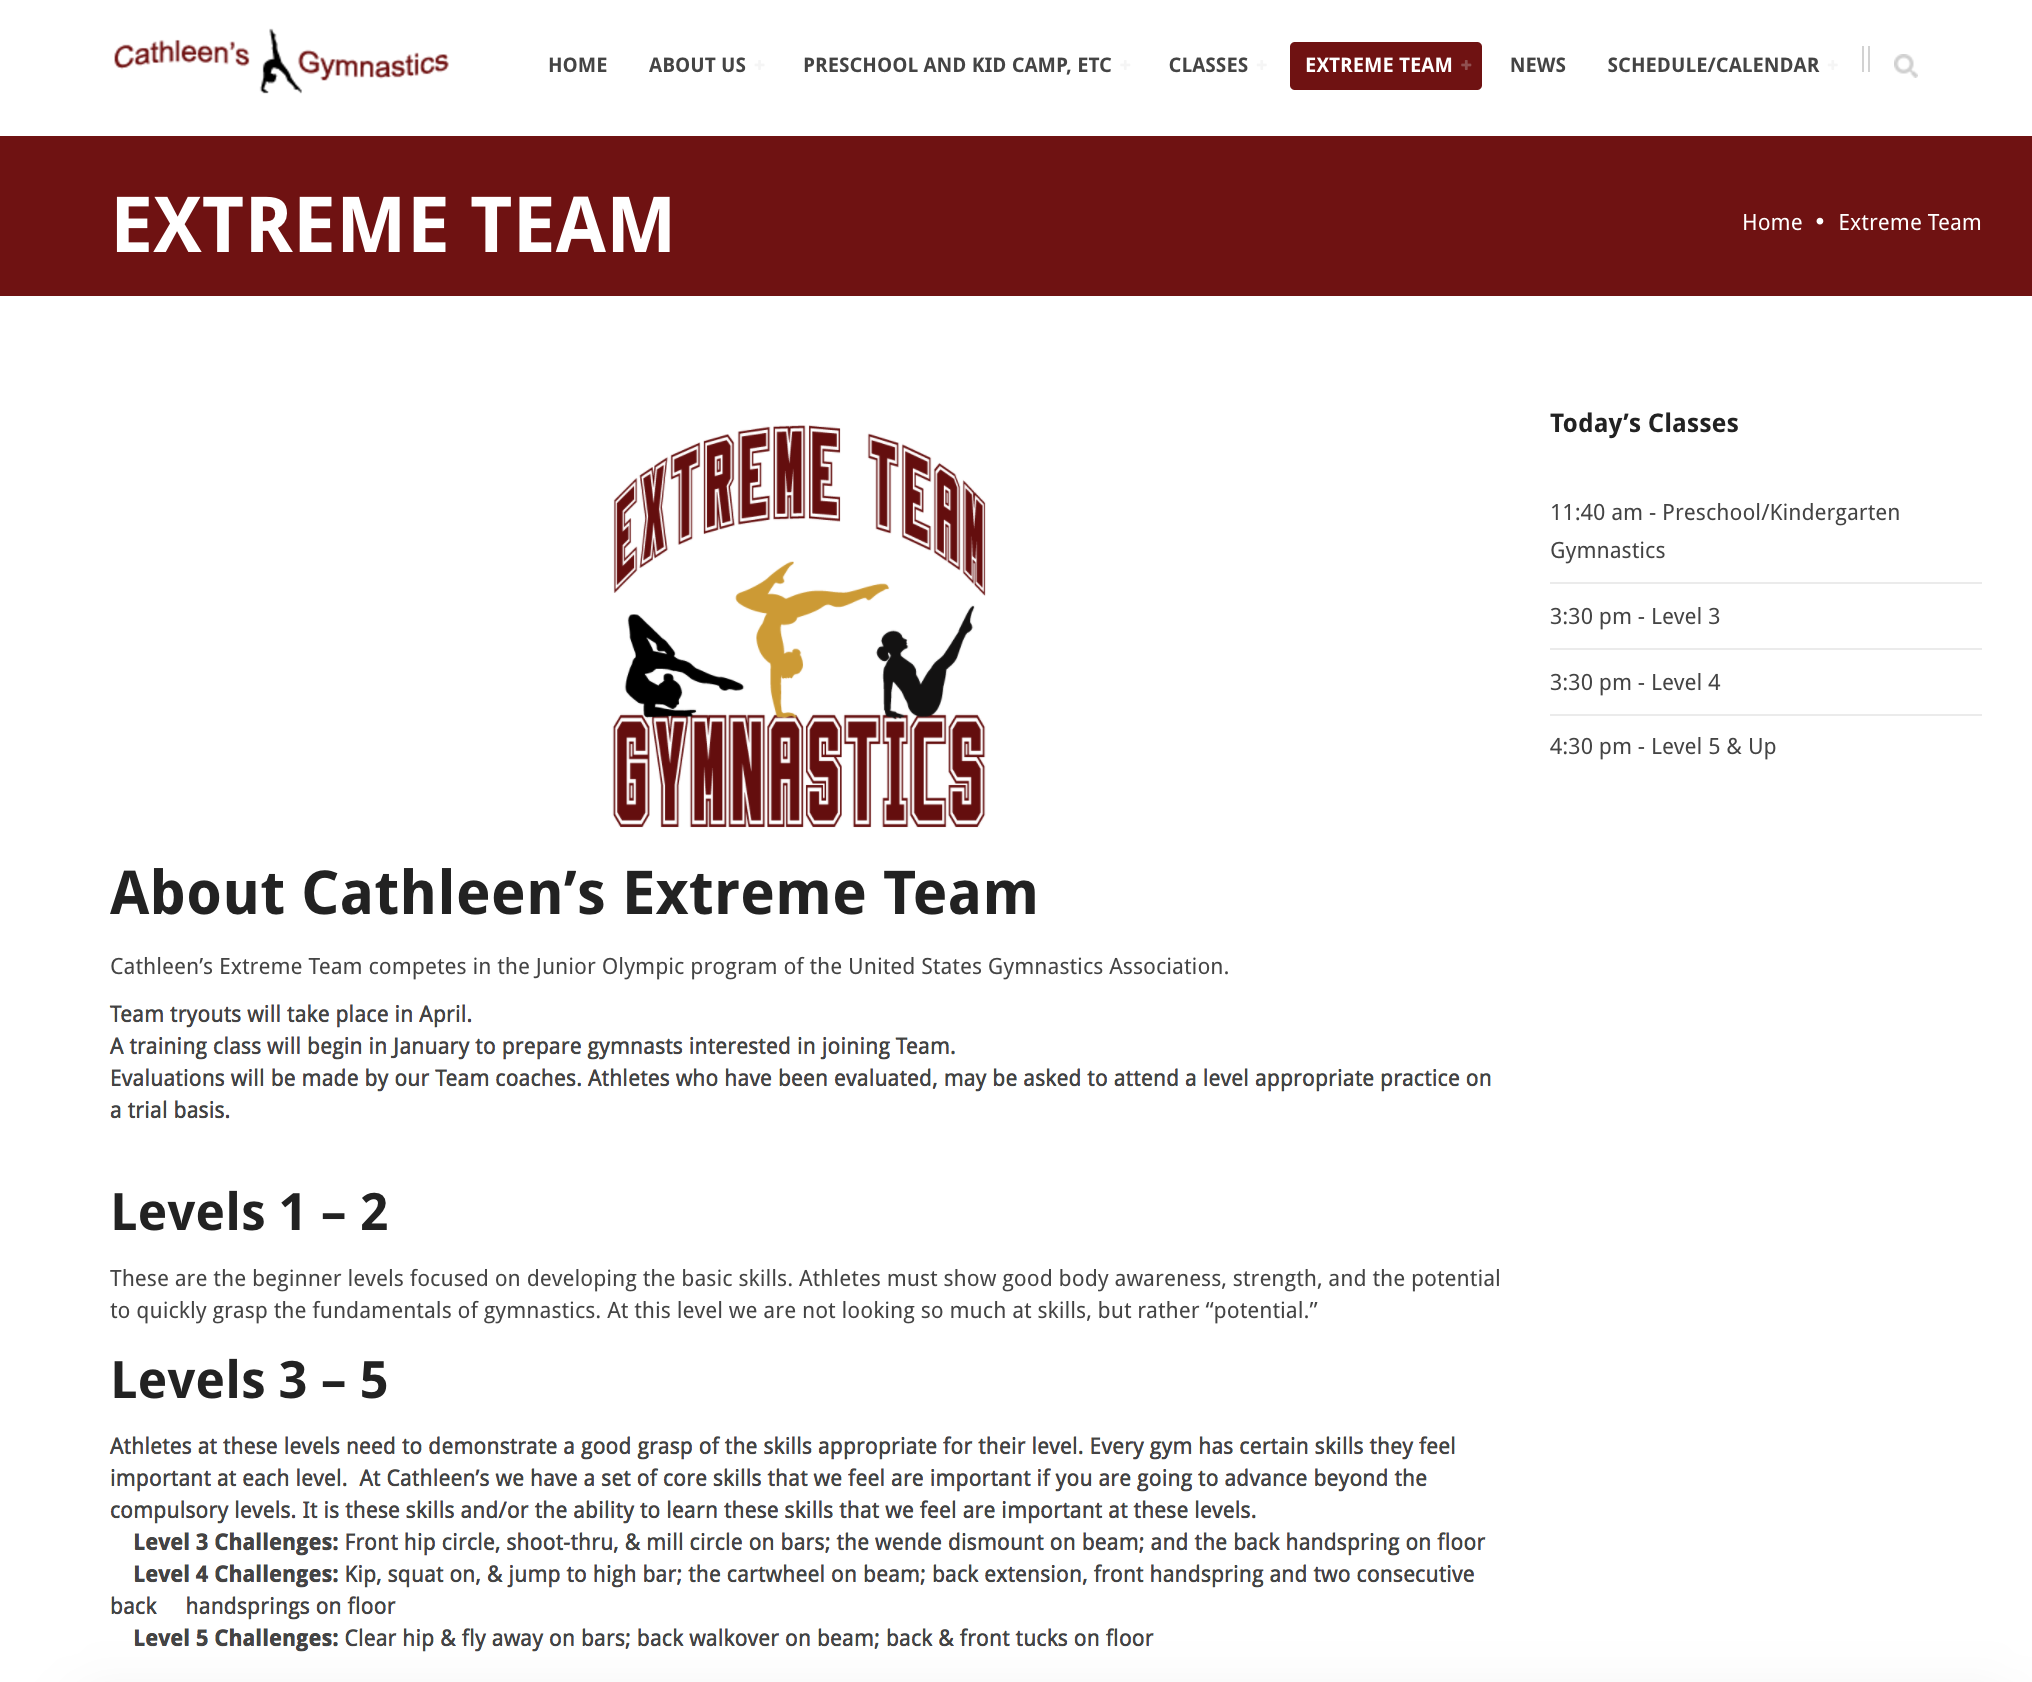 Cathleen's Gymnastics Website